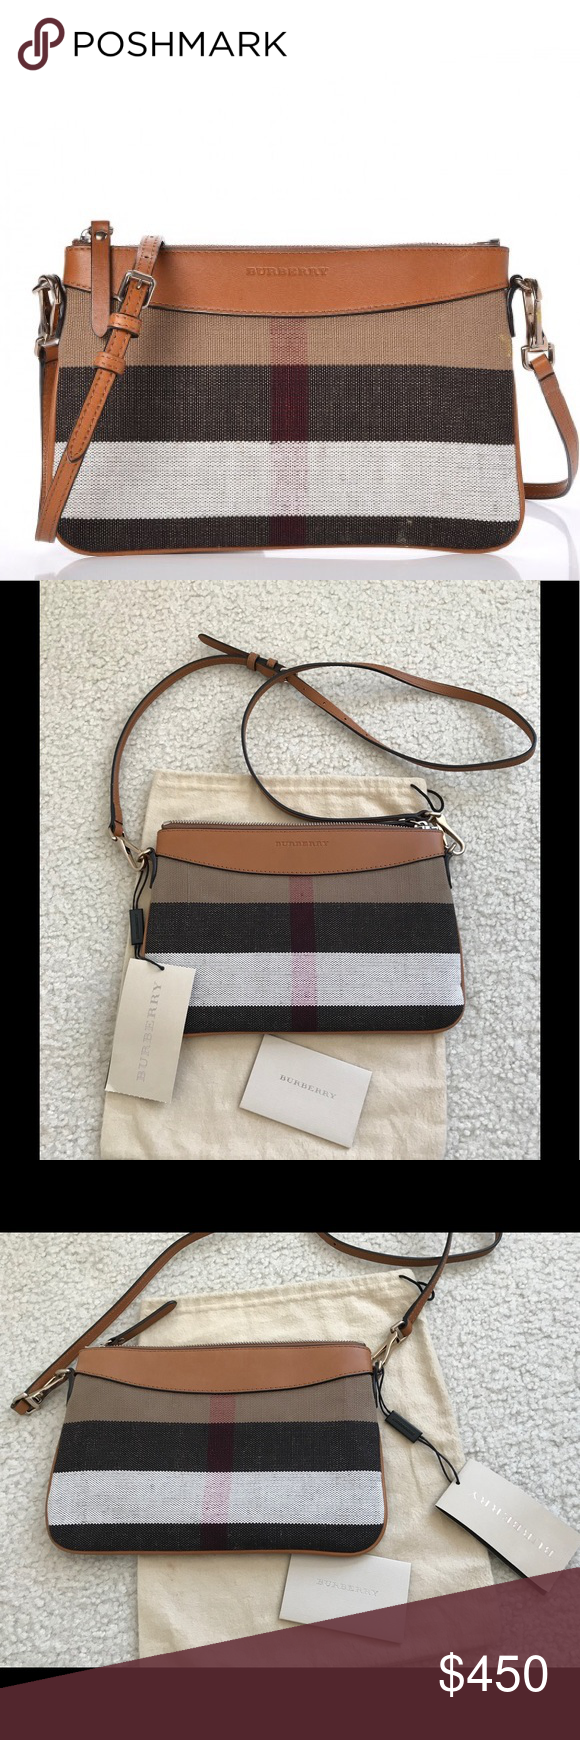 78171aefe NWT Burberry crossbody clutch bag 100%Authentic guaranteed Burberry Canvas  Check Calfskin Derby Peyton Crossbody